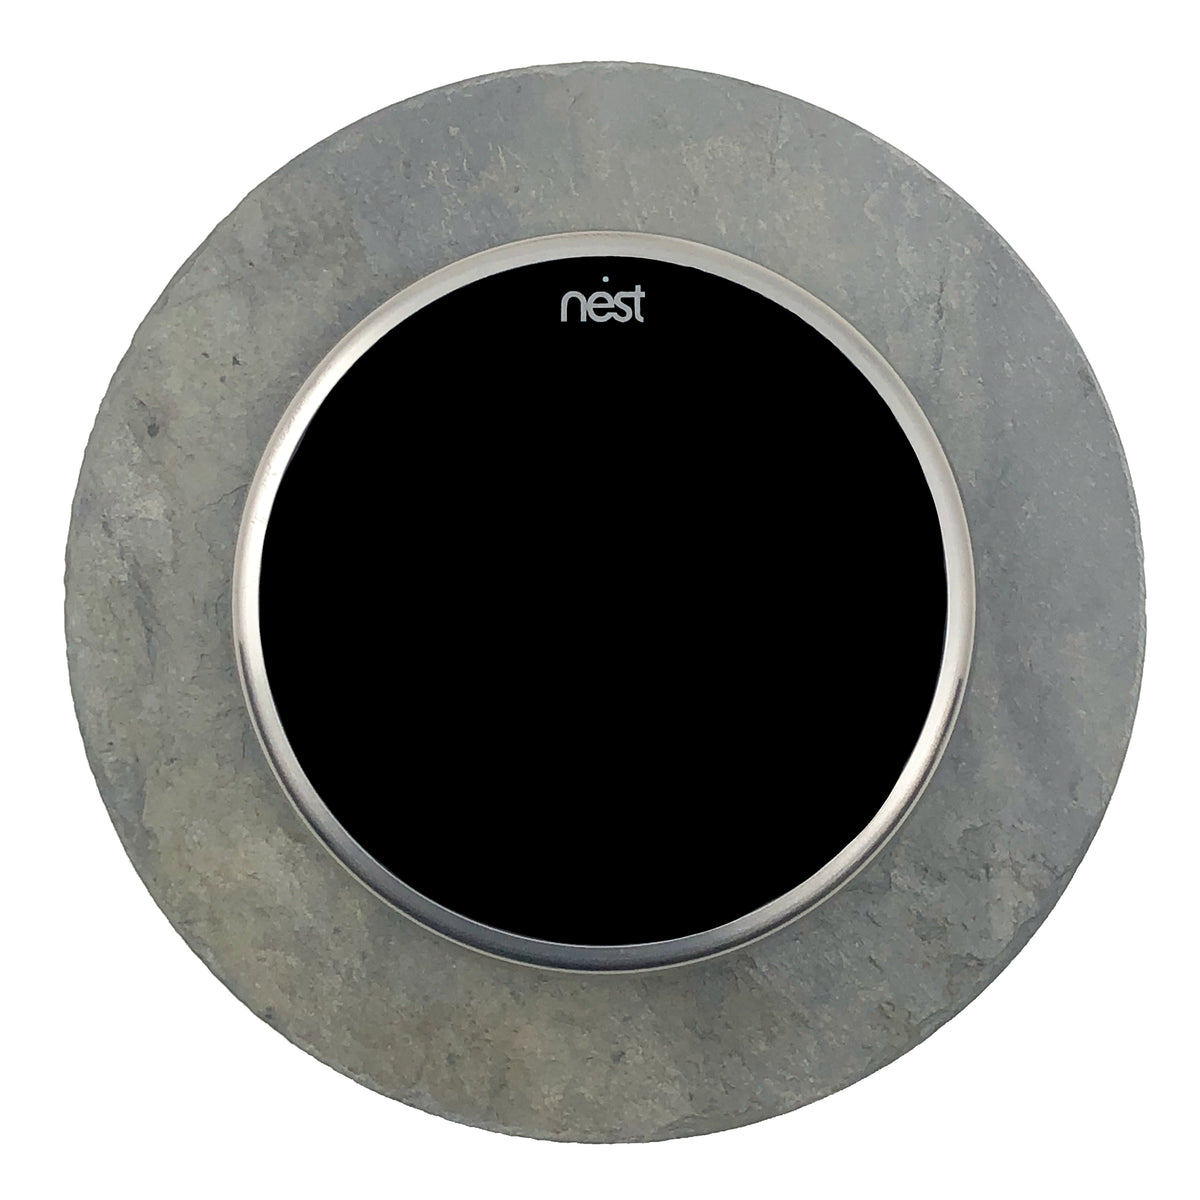 Nest Wall Plate 5 Inches Round Gray Slate Stone